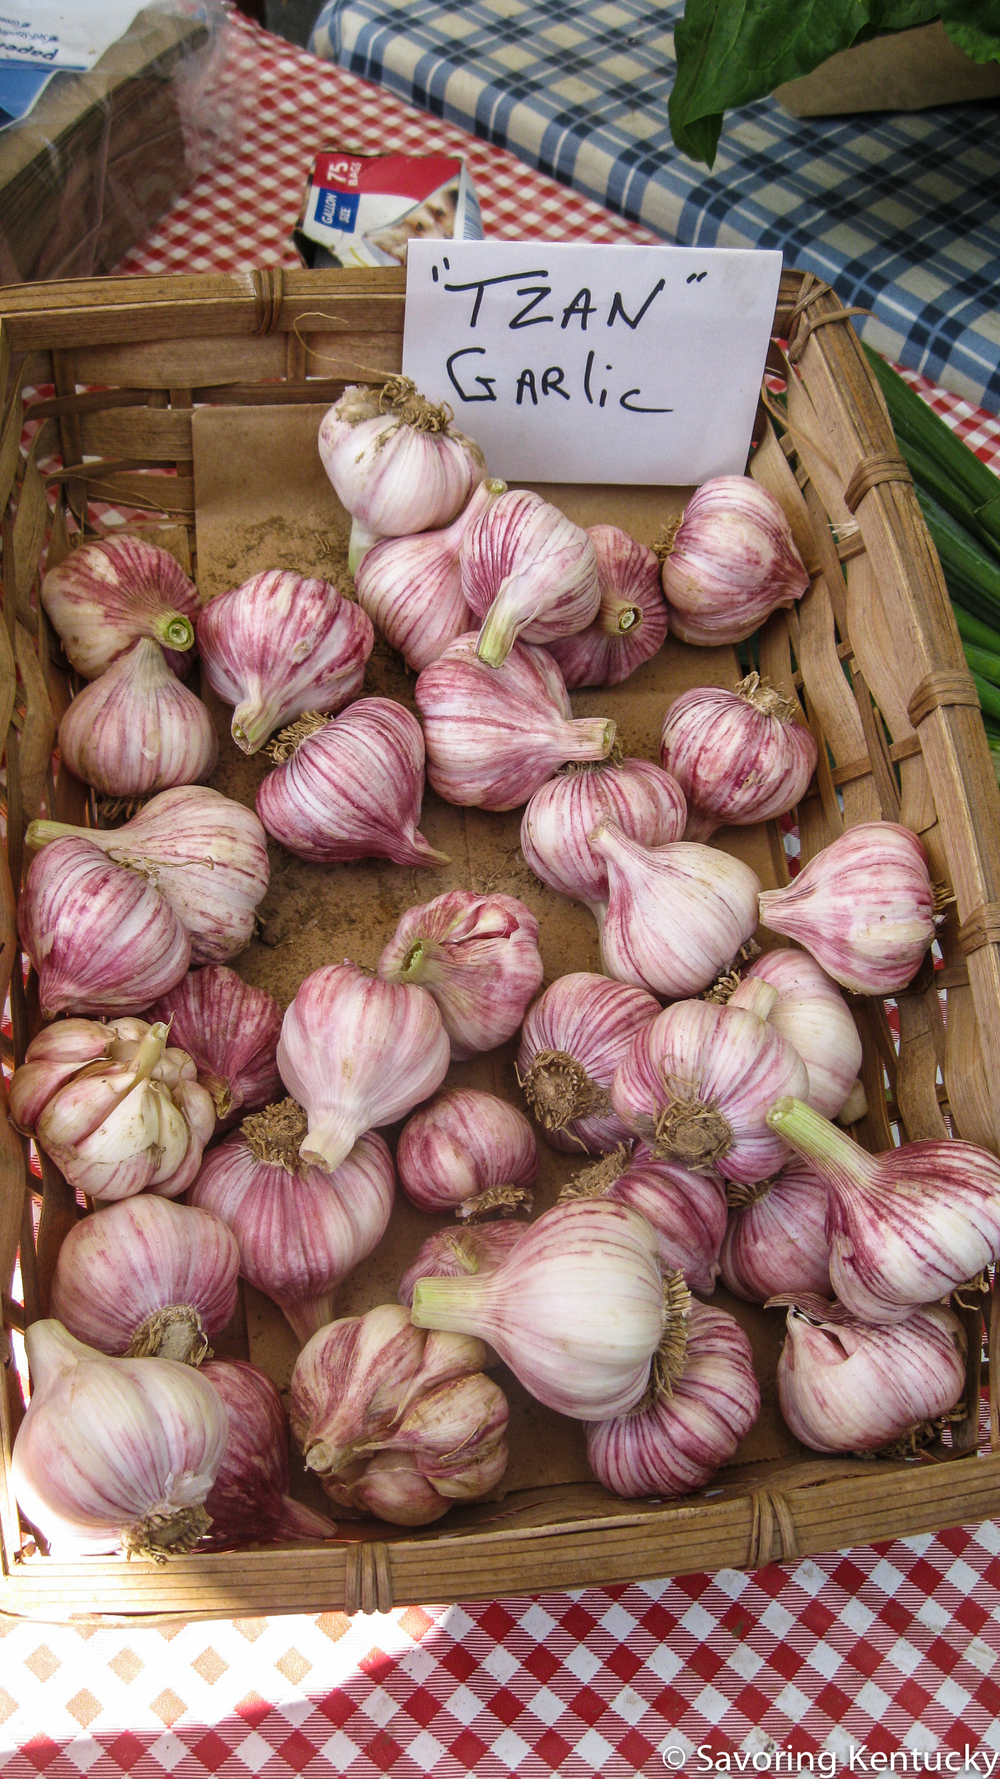 Beautiful new garlic